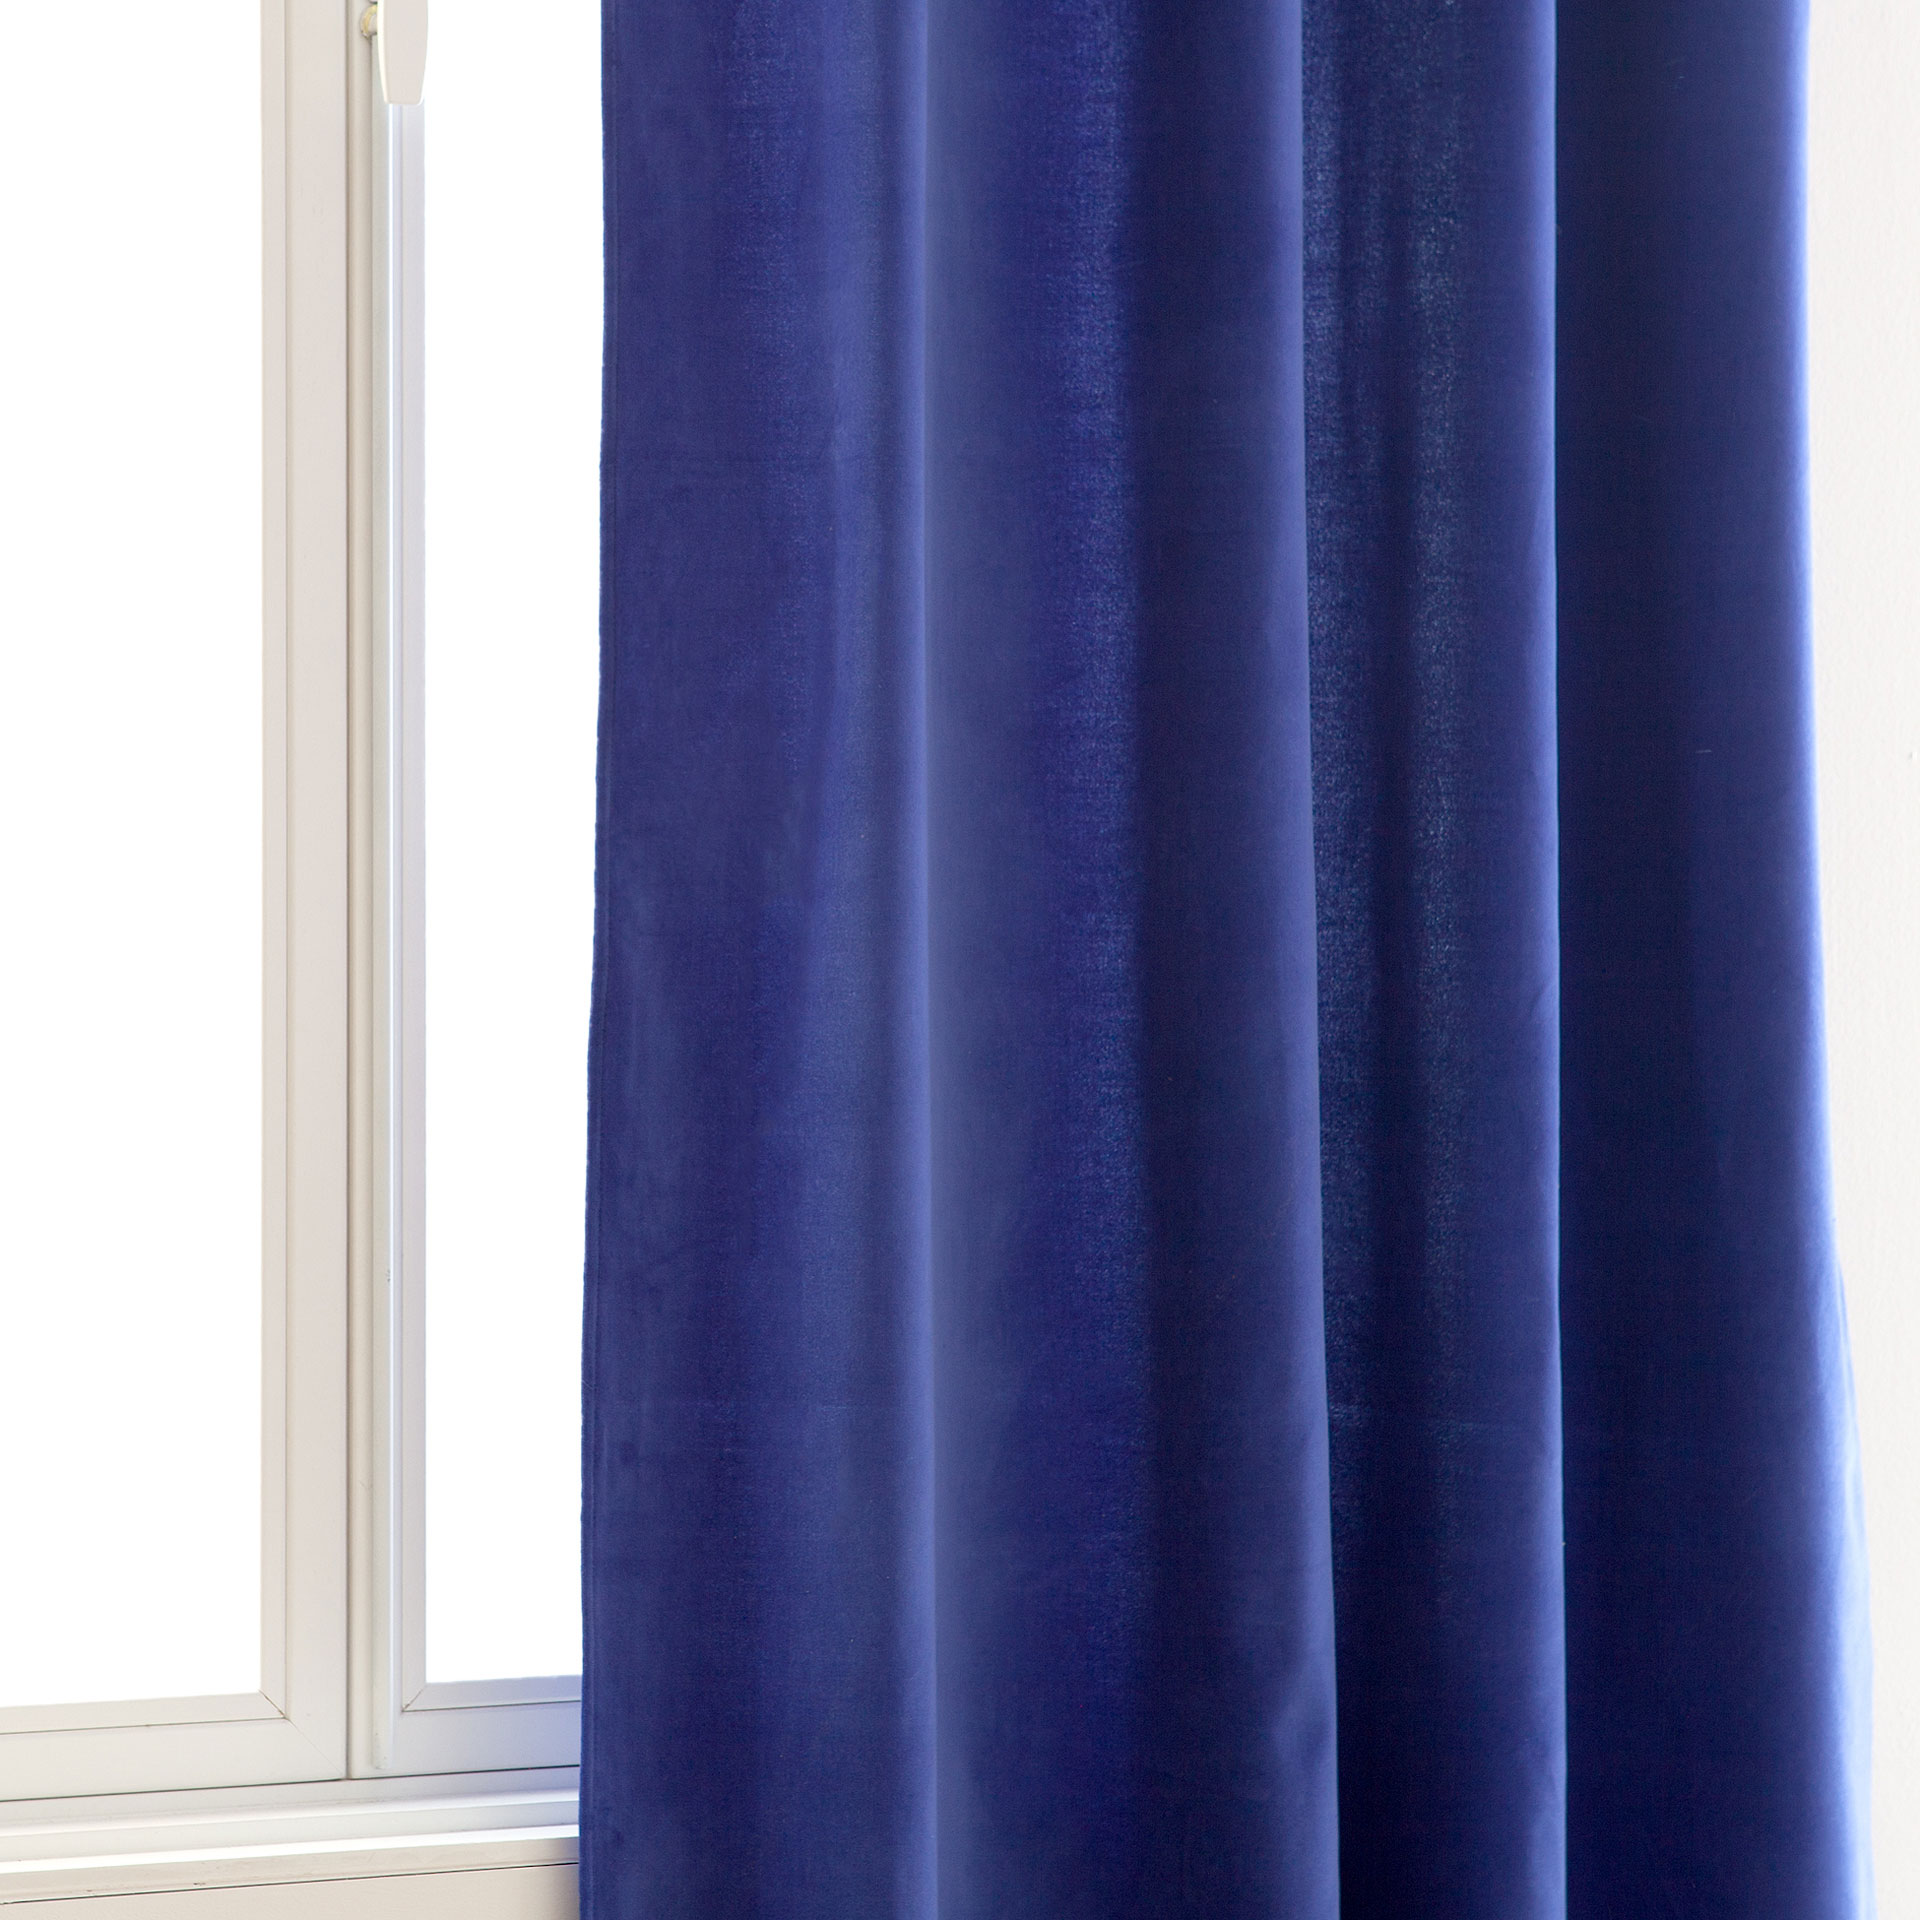 French Door Curtains Blackout Compare Price To Pleats Spoila 100 Interior